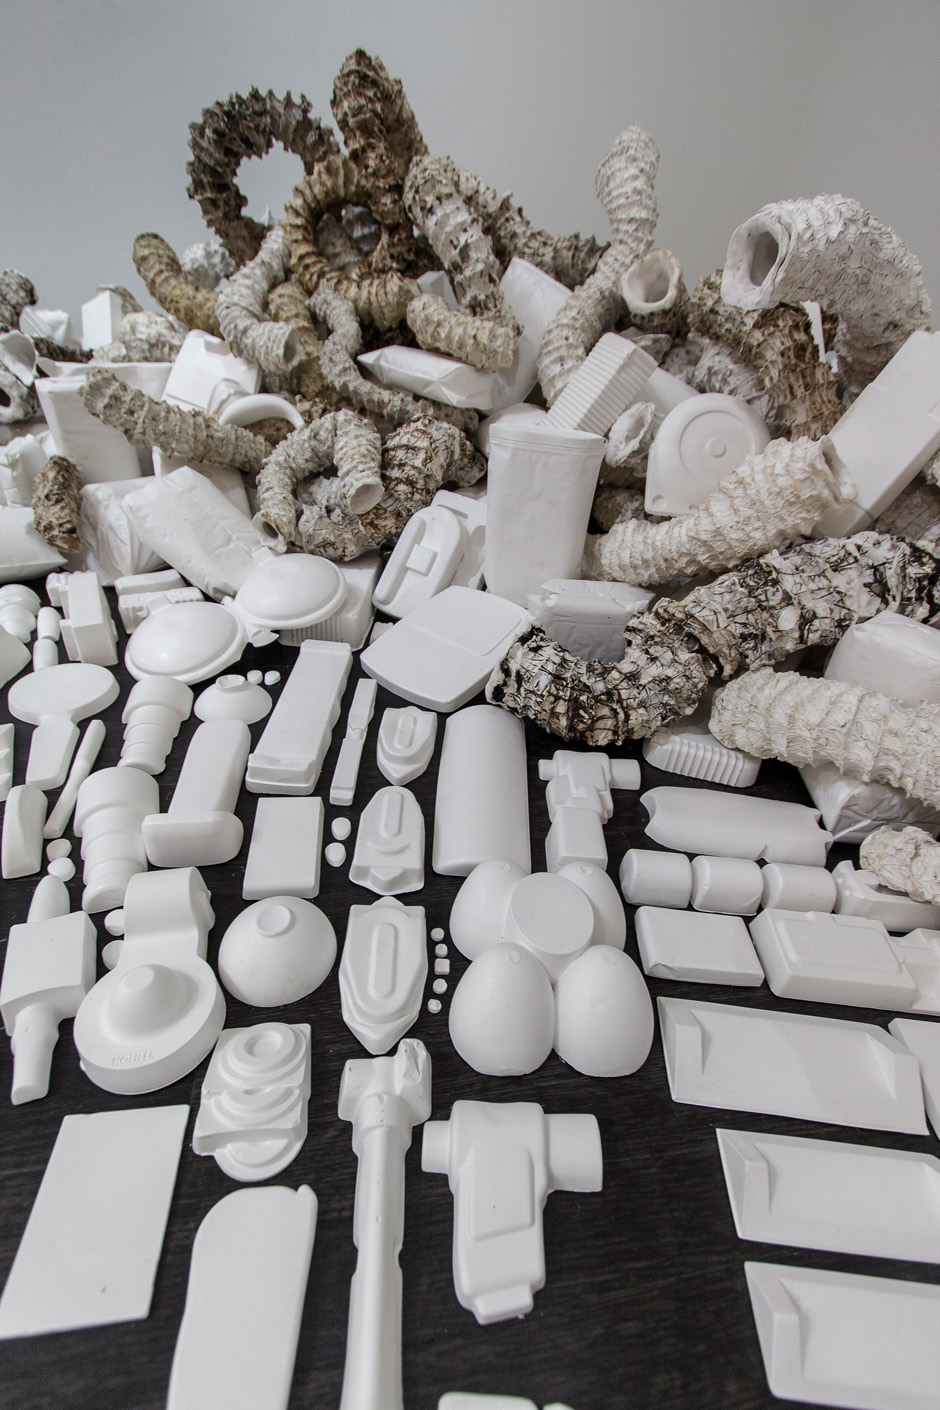 Seemingly Unconnected Events V4  2007- 2014 (ongoing)  DETAIL.Hundreds of plaster casts of organic forms stacked and interlaced with consumer goods casts, 15 x 7 x 2.5'  Installation for Re Imagine, Three Person Exhibition, Epsten Gallery, Village Shalom, metropolitan Kansas City, 2014   Photo: E.G. Schempf